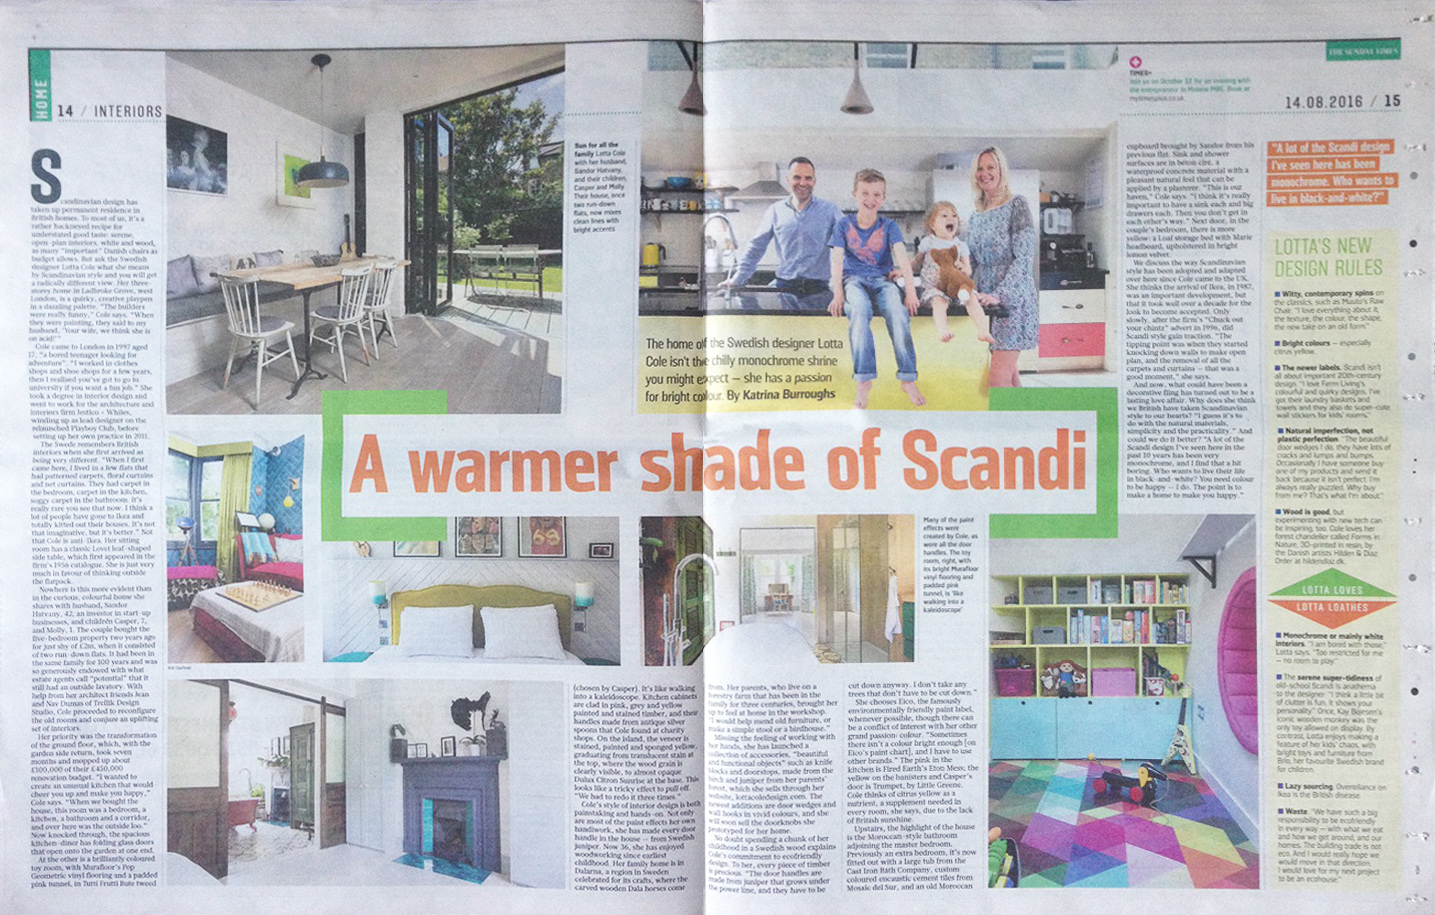 Http://www.thetimes.co.uk/article/swedish Designer  Lotta Cole On The New Scandi Fcnp73j5p